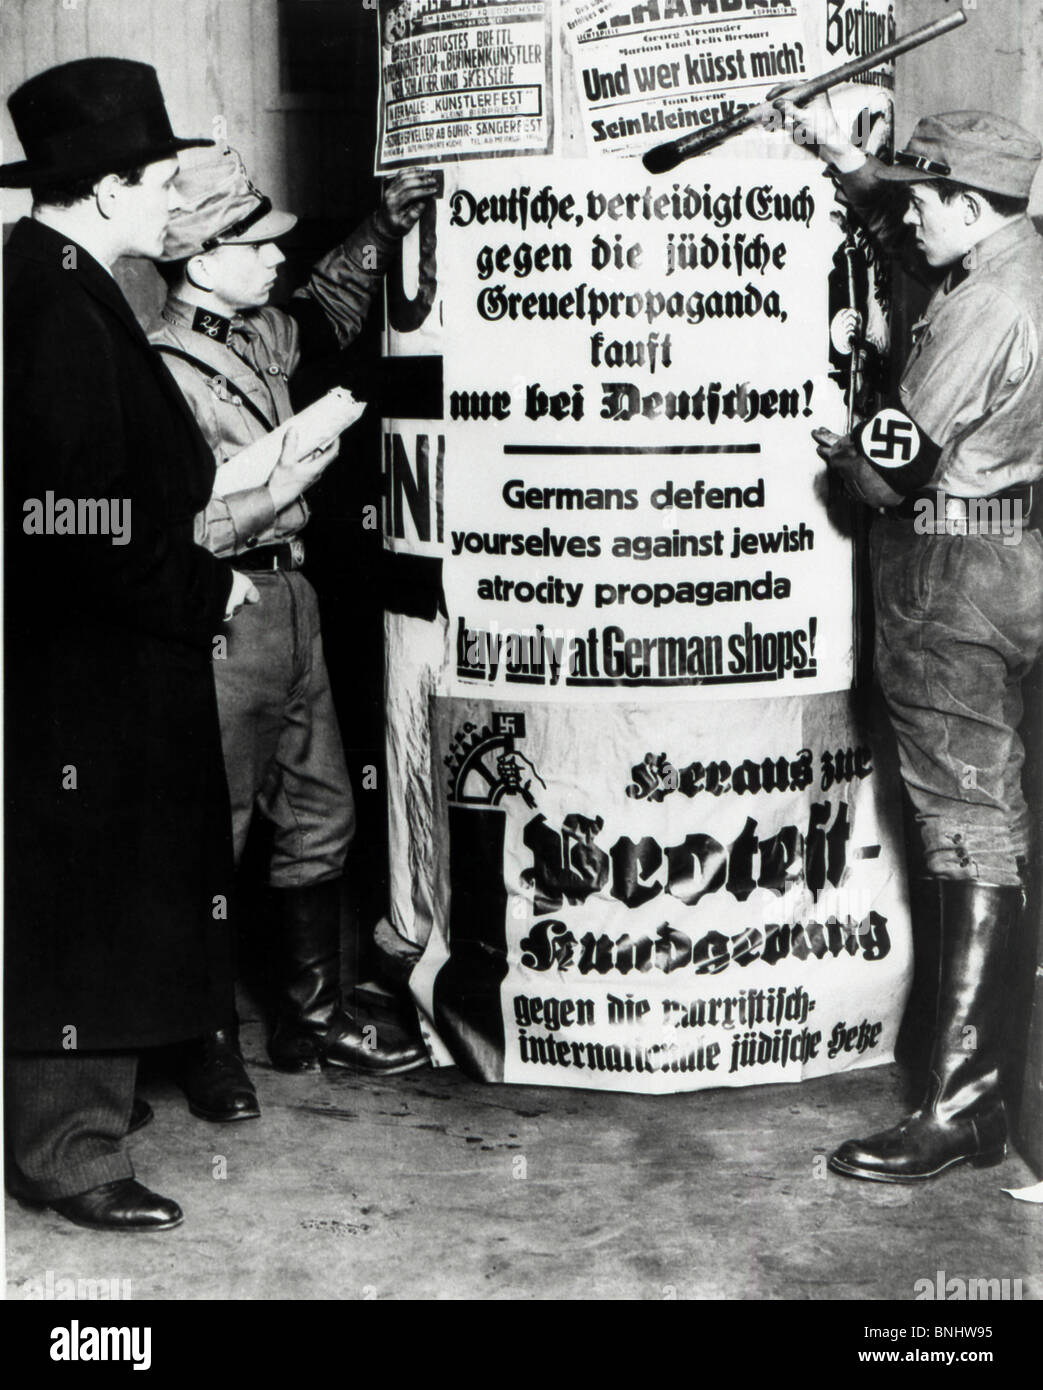 Weimar Republic German empire Members of the SA Germans against Jews hate Jewish propaganda buy only at German shops - Stock Image